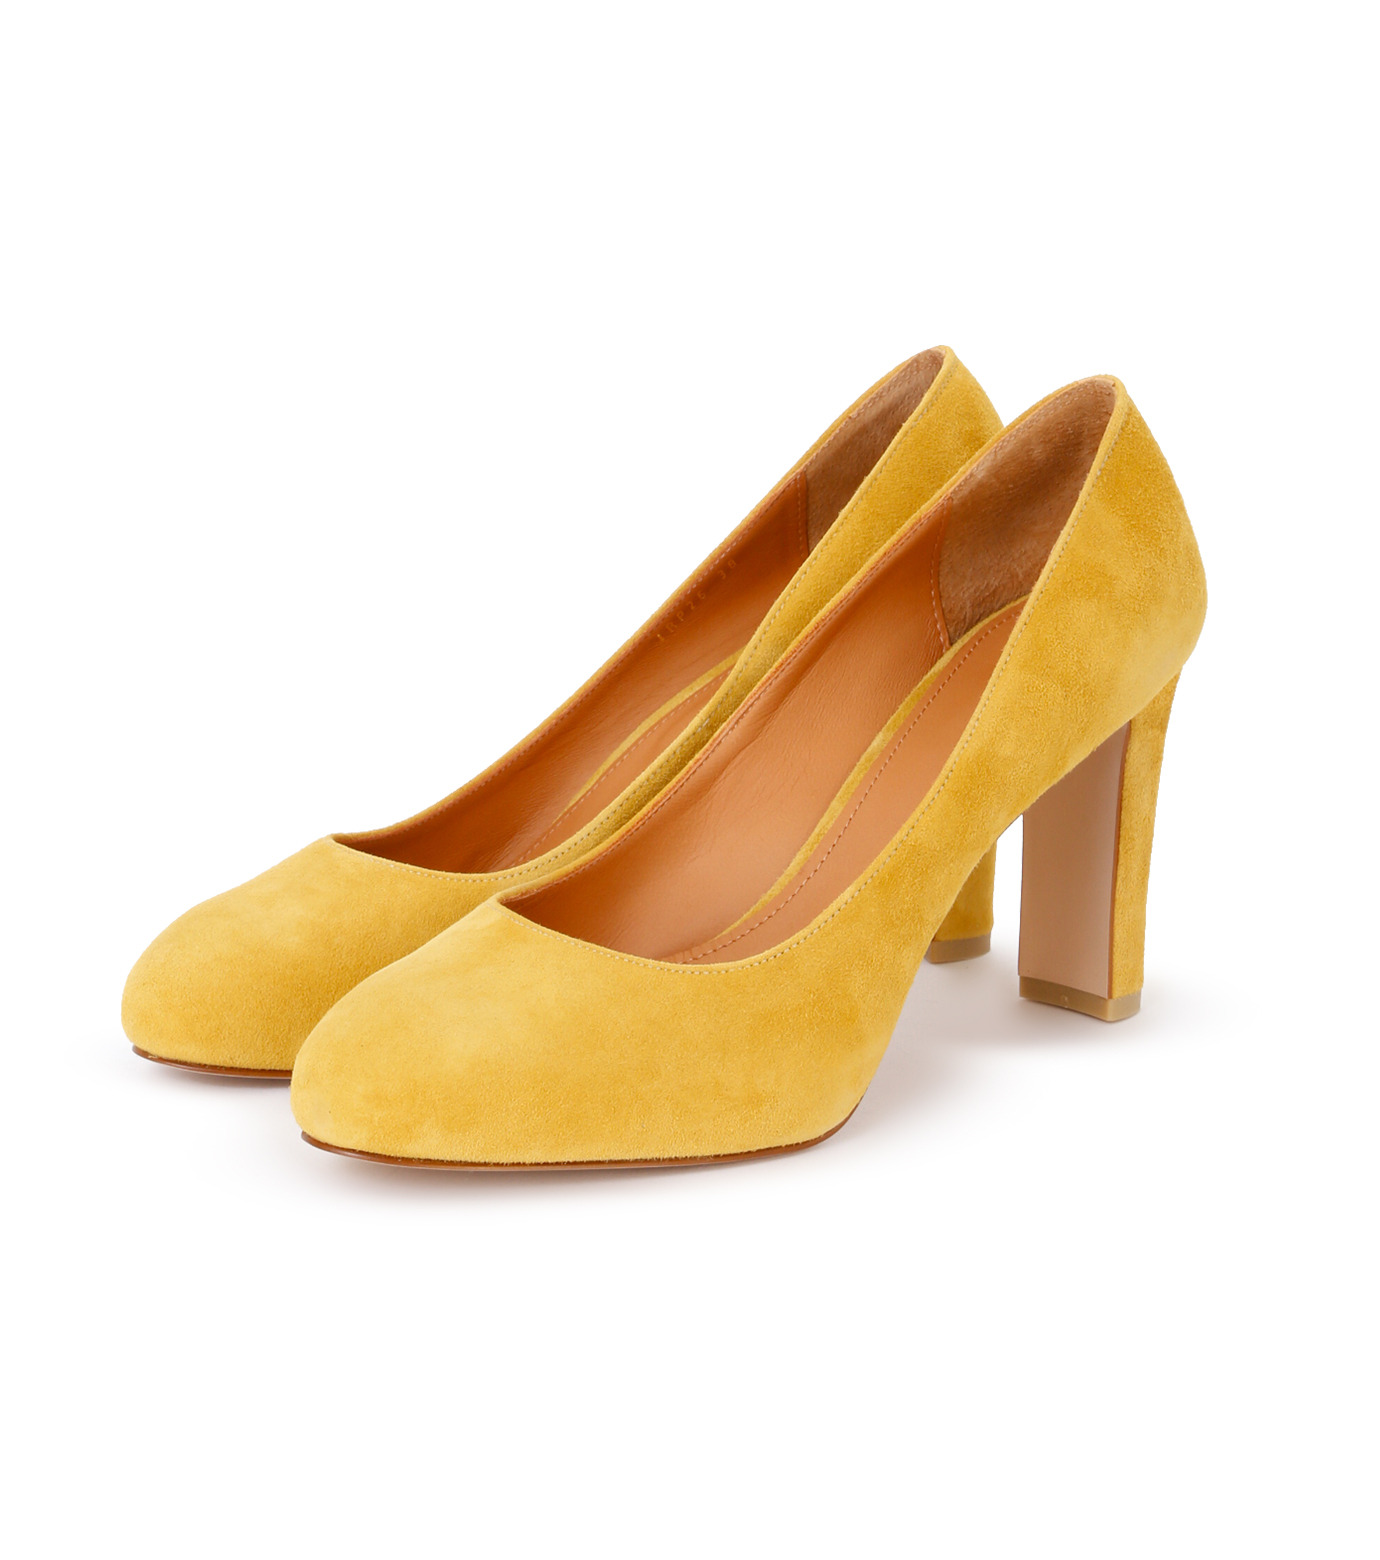 PIPPICHIC(ピッピシック)のInstorm Round Toe Pumps-YELLOW(パンプス/pumps)-PP16-IRP26-L 拡大詳細画像2